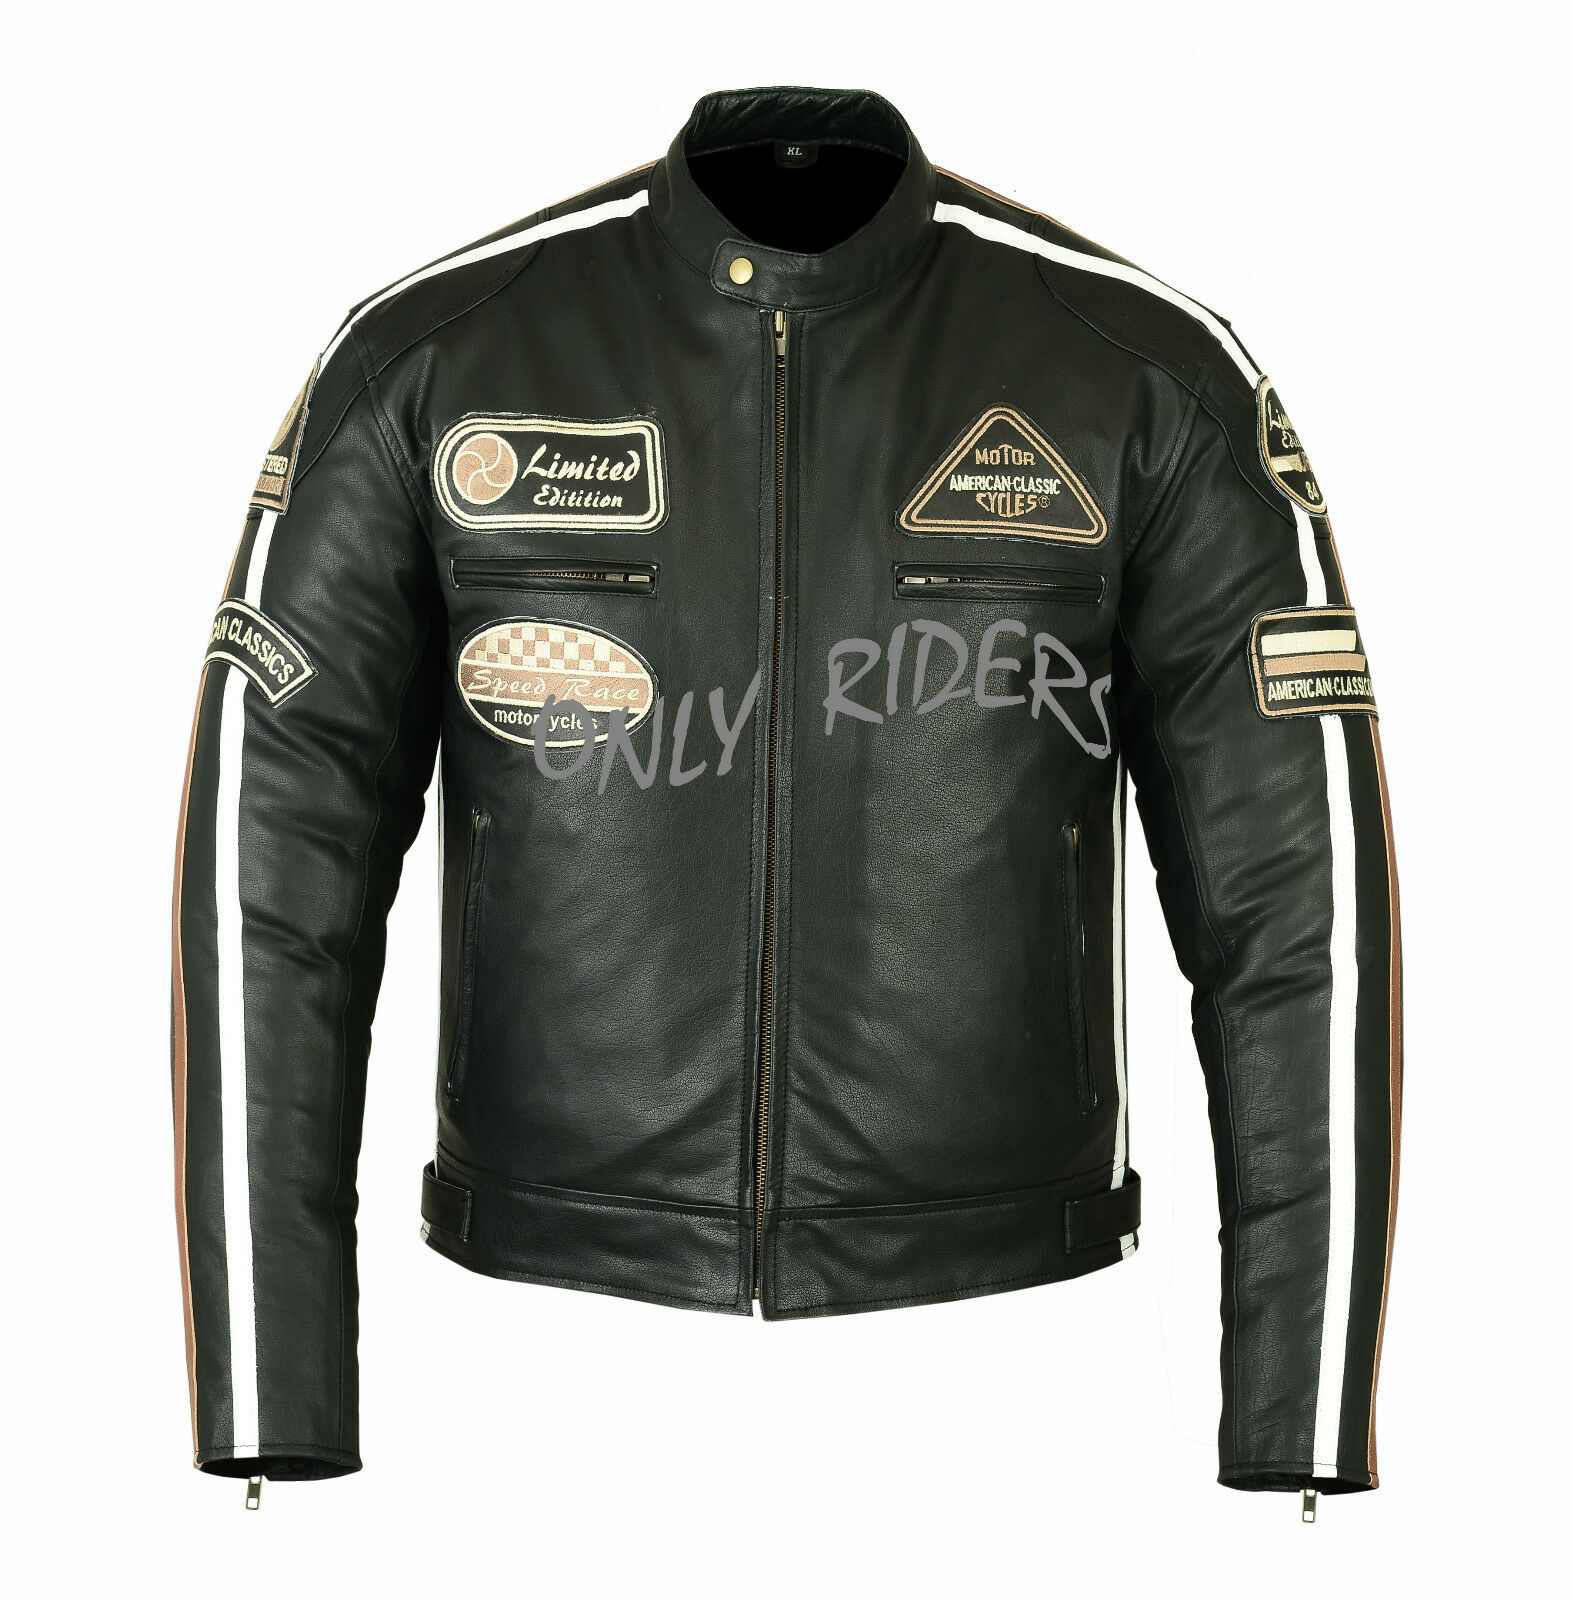 blouson en cuir biker veste moto homme blouson quad. Black Bedroom Furniture Sets. Home Design Ideas